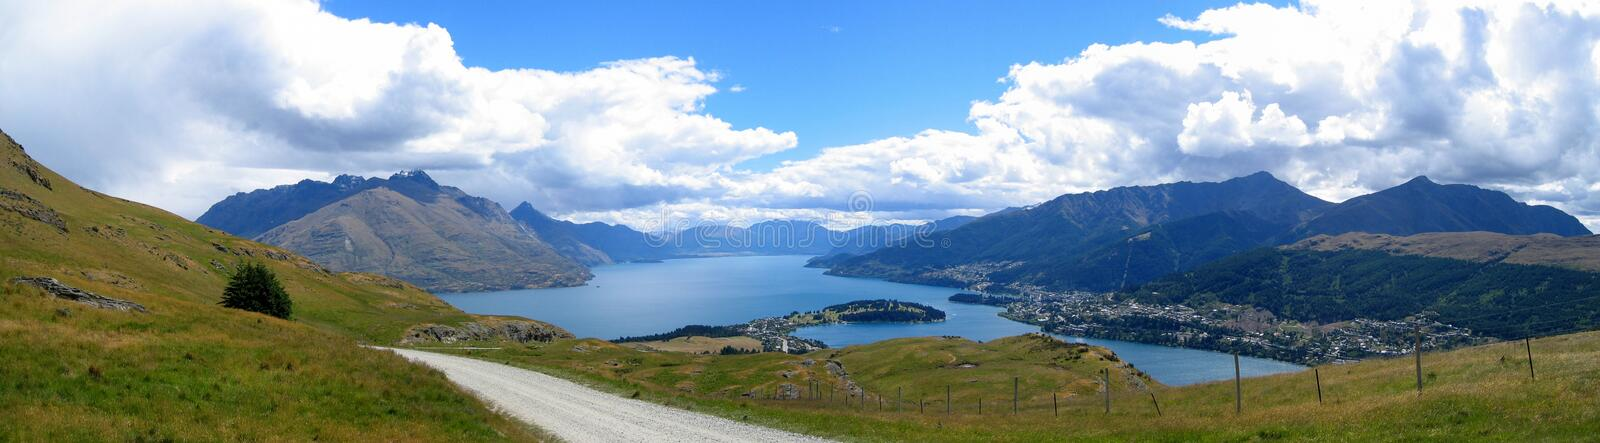 Queenstown. Panorama of Queenstown and Lake Wakatipu, New Zealand royalty free stock image